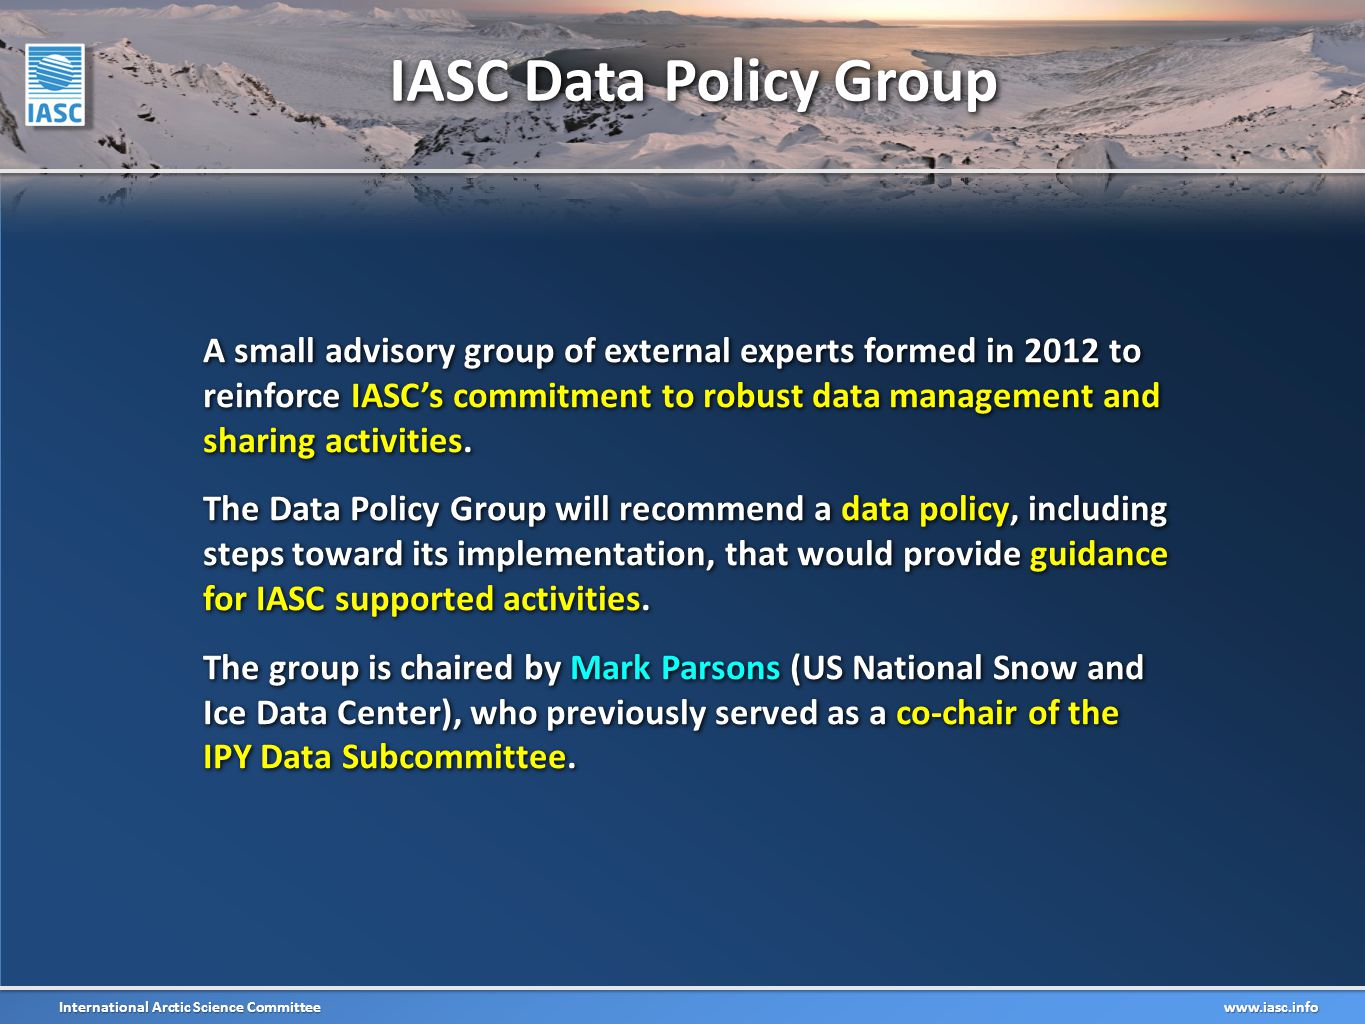 International Arctic Science Committee www.iasc.info A small advisory group of external experts formed in 2012 to reinforce IASC's commitment to robust data management and sharing activities.